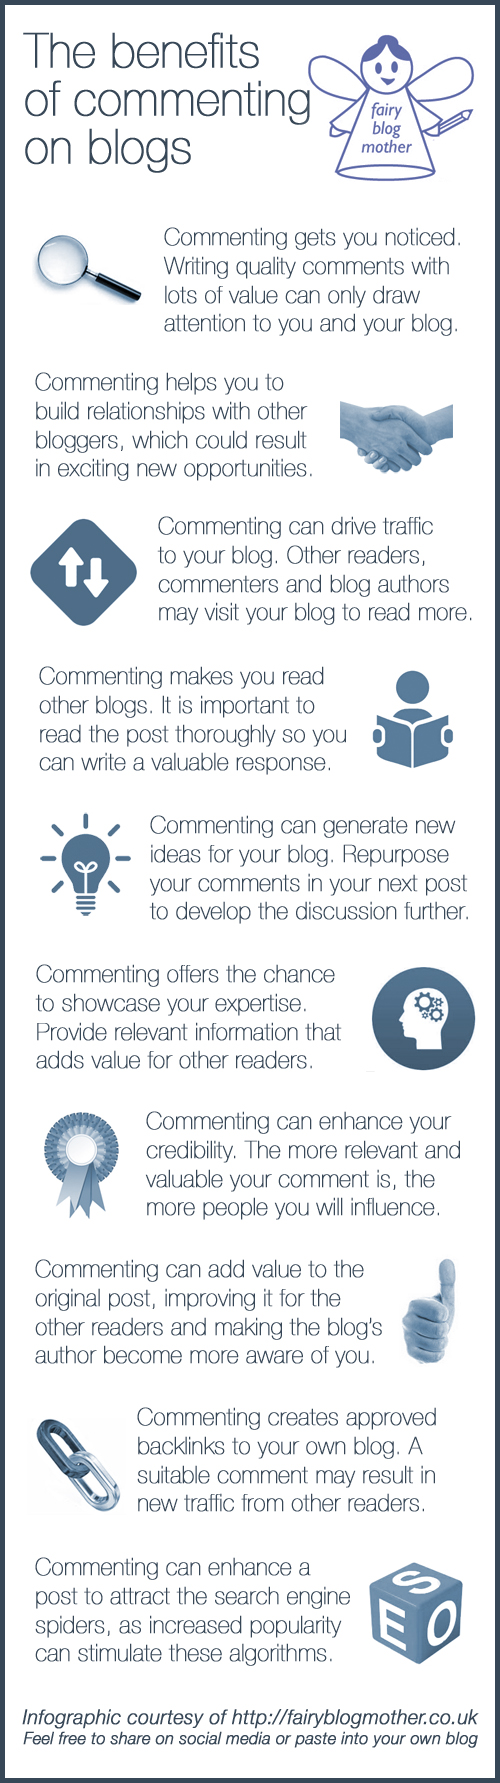 The benefits of commenting on blogs